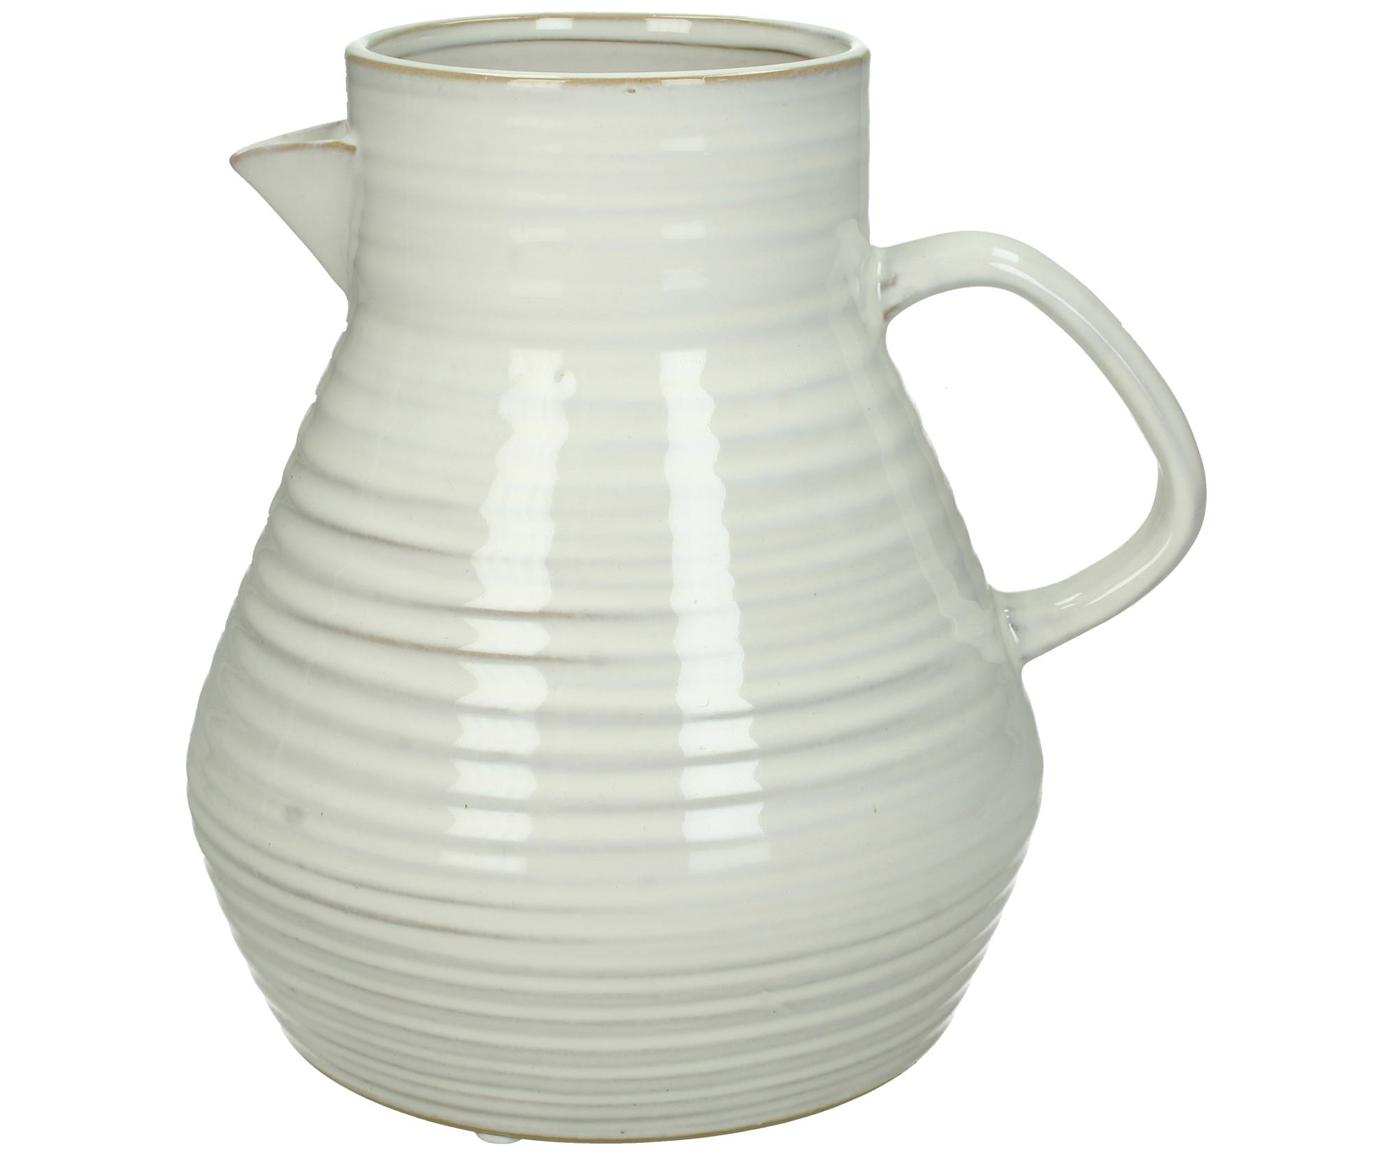 Brocca-vaso in terracotta Pitcher, Terracotta, Bianco spezzato, beige, Larg. 20 x Alt. 20 cm